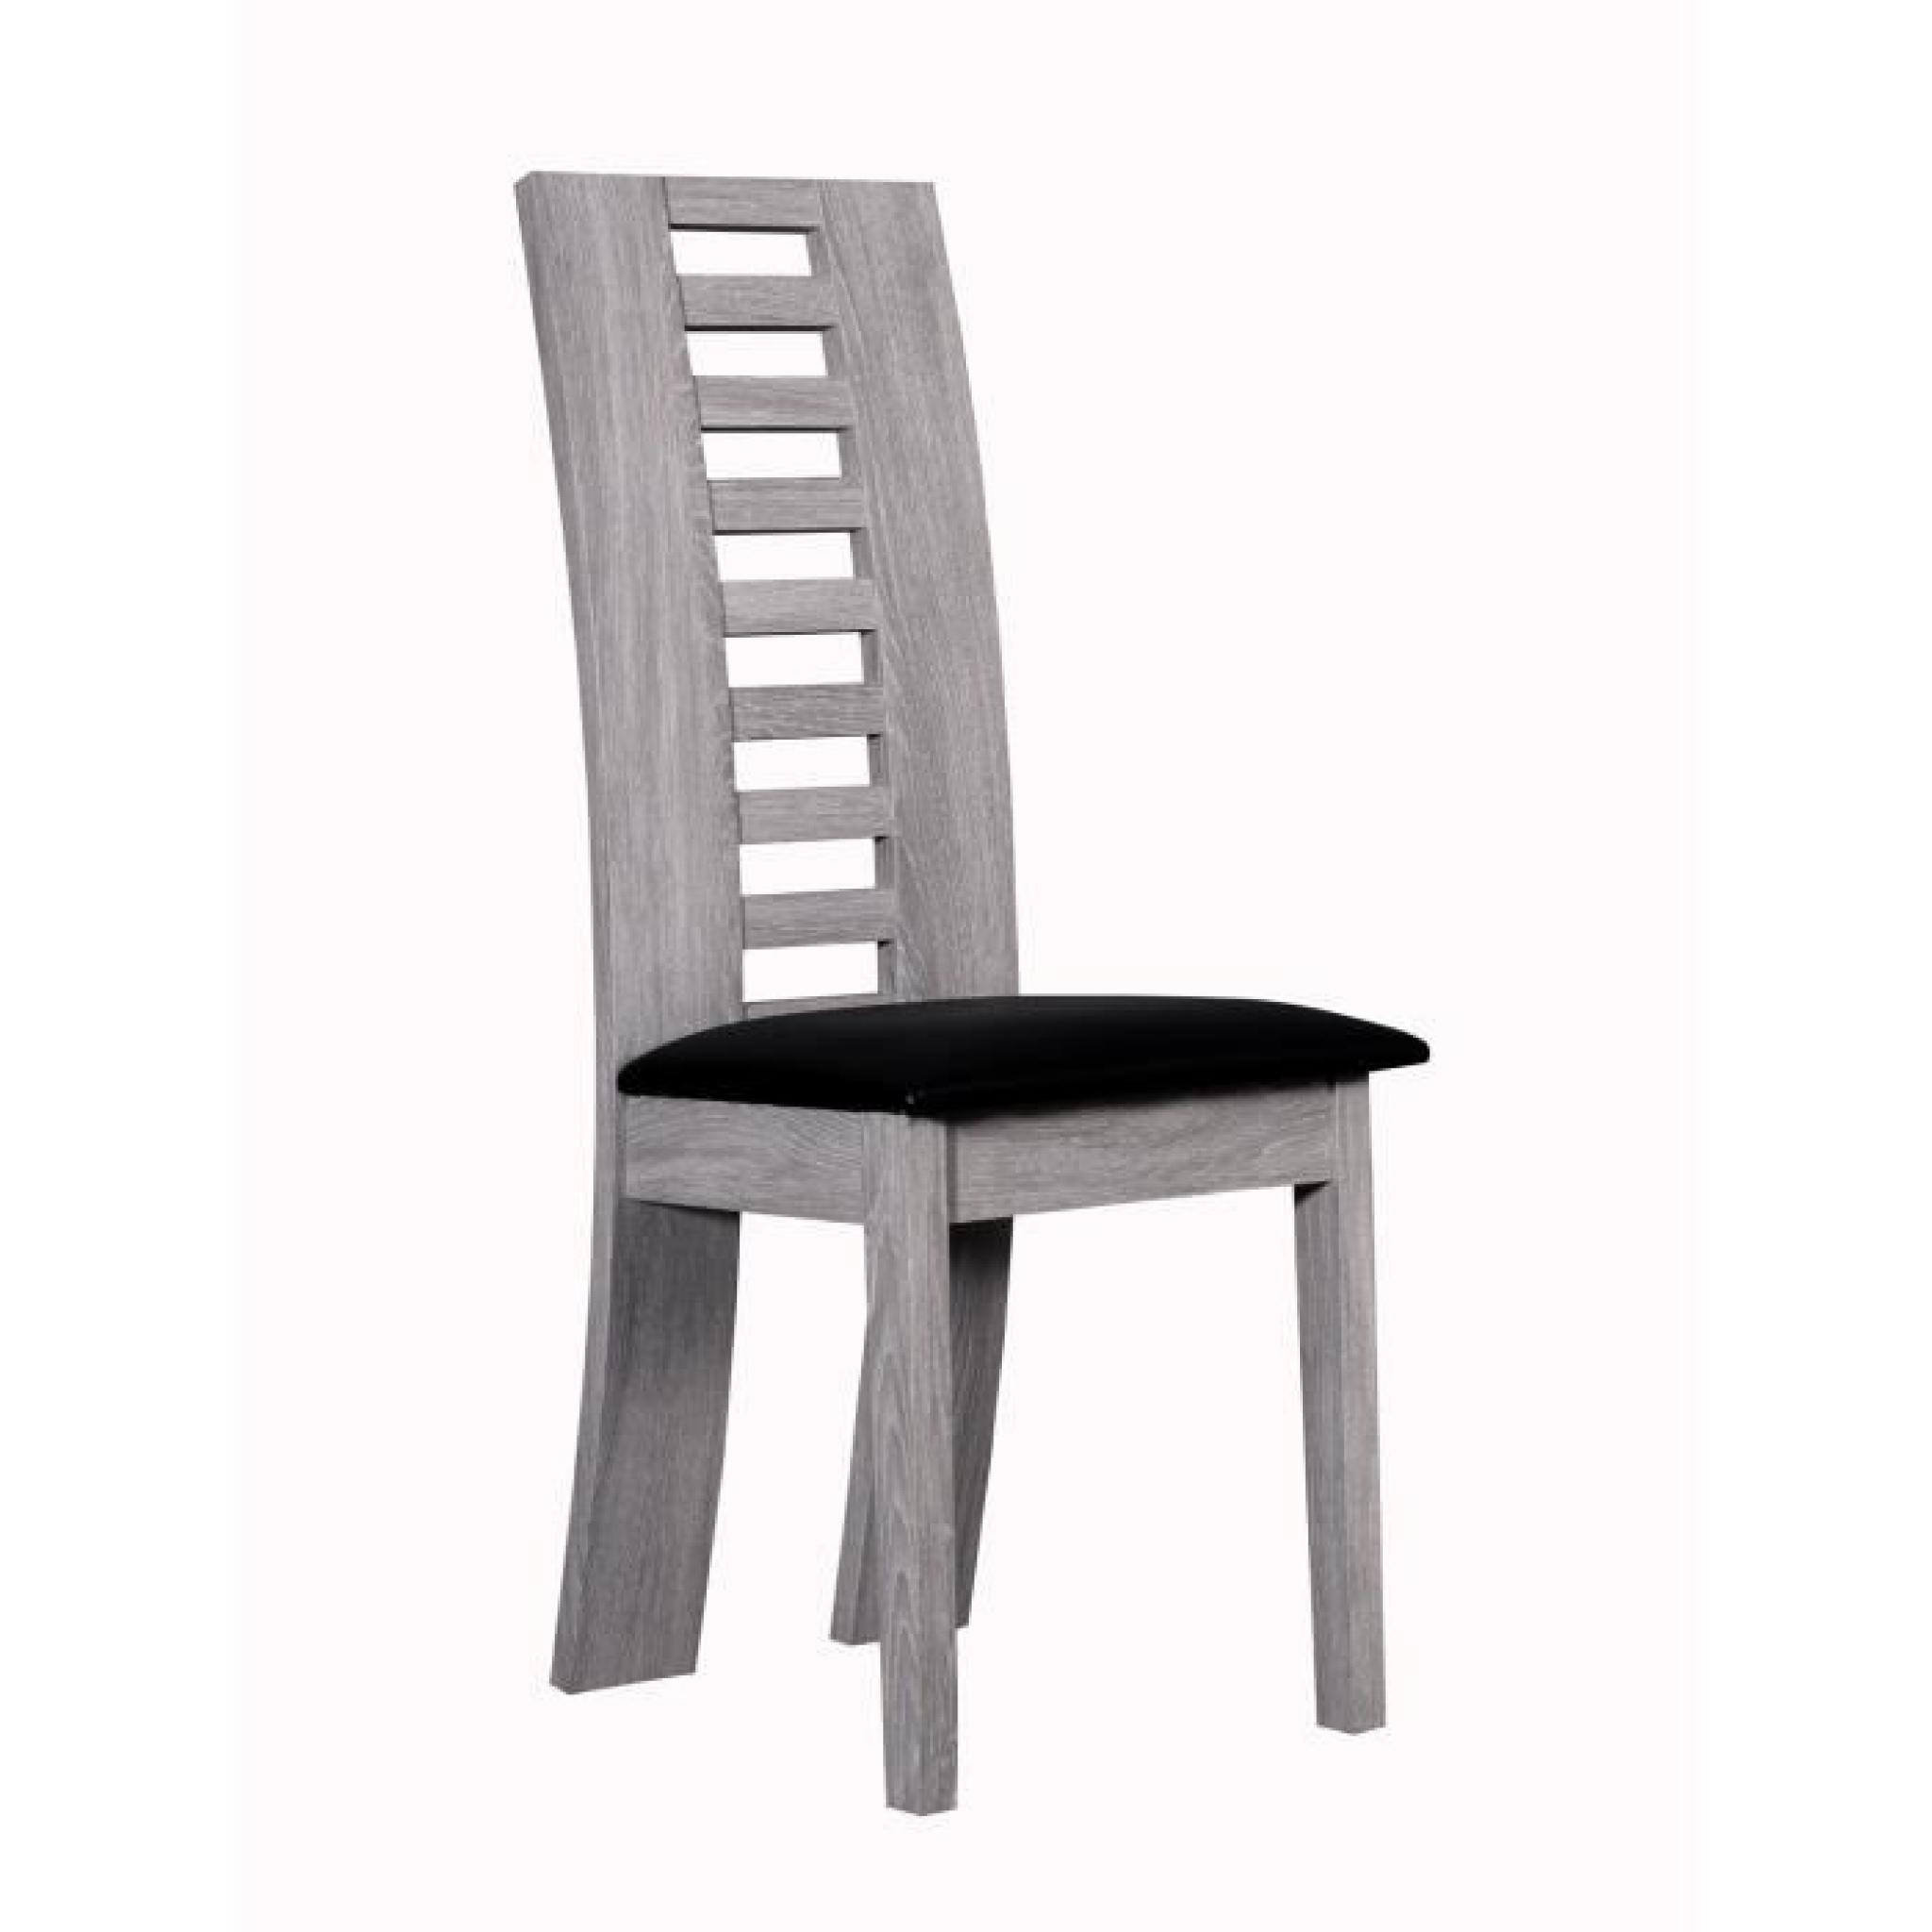 Chaises salle a manger design pas cher valdiz for Chaise de table a manger design